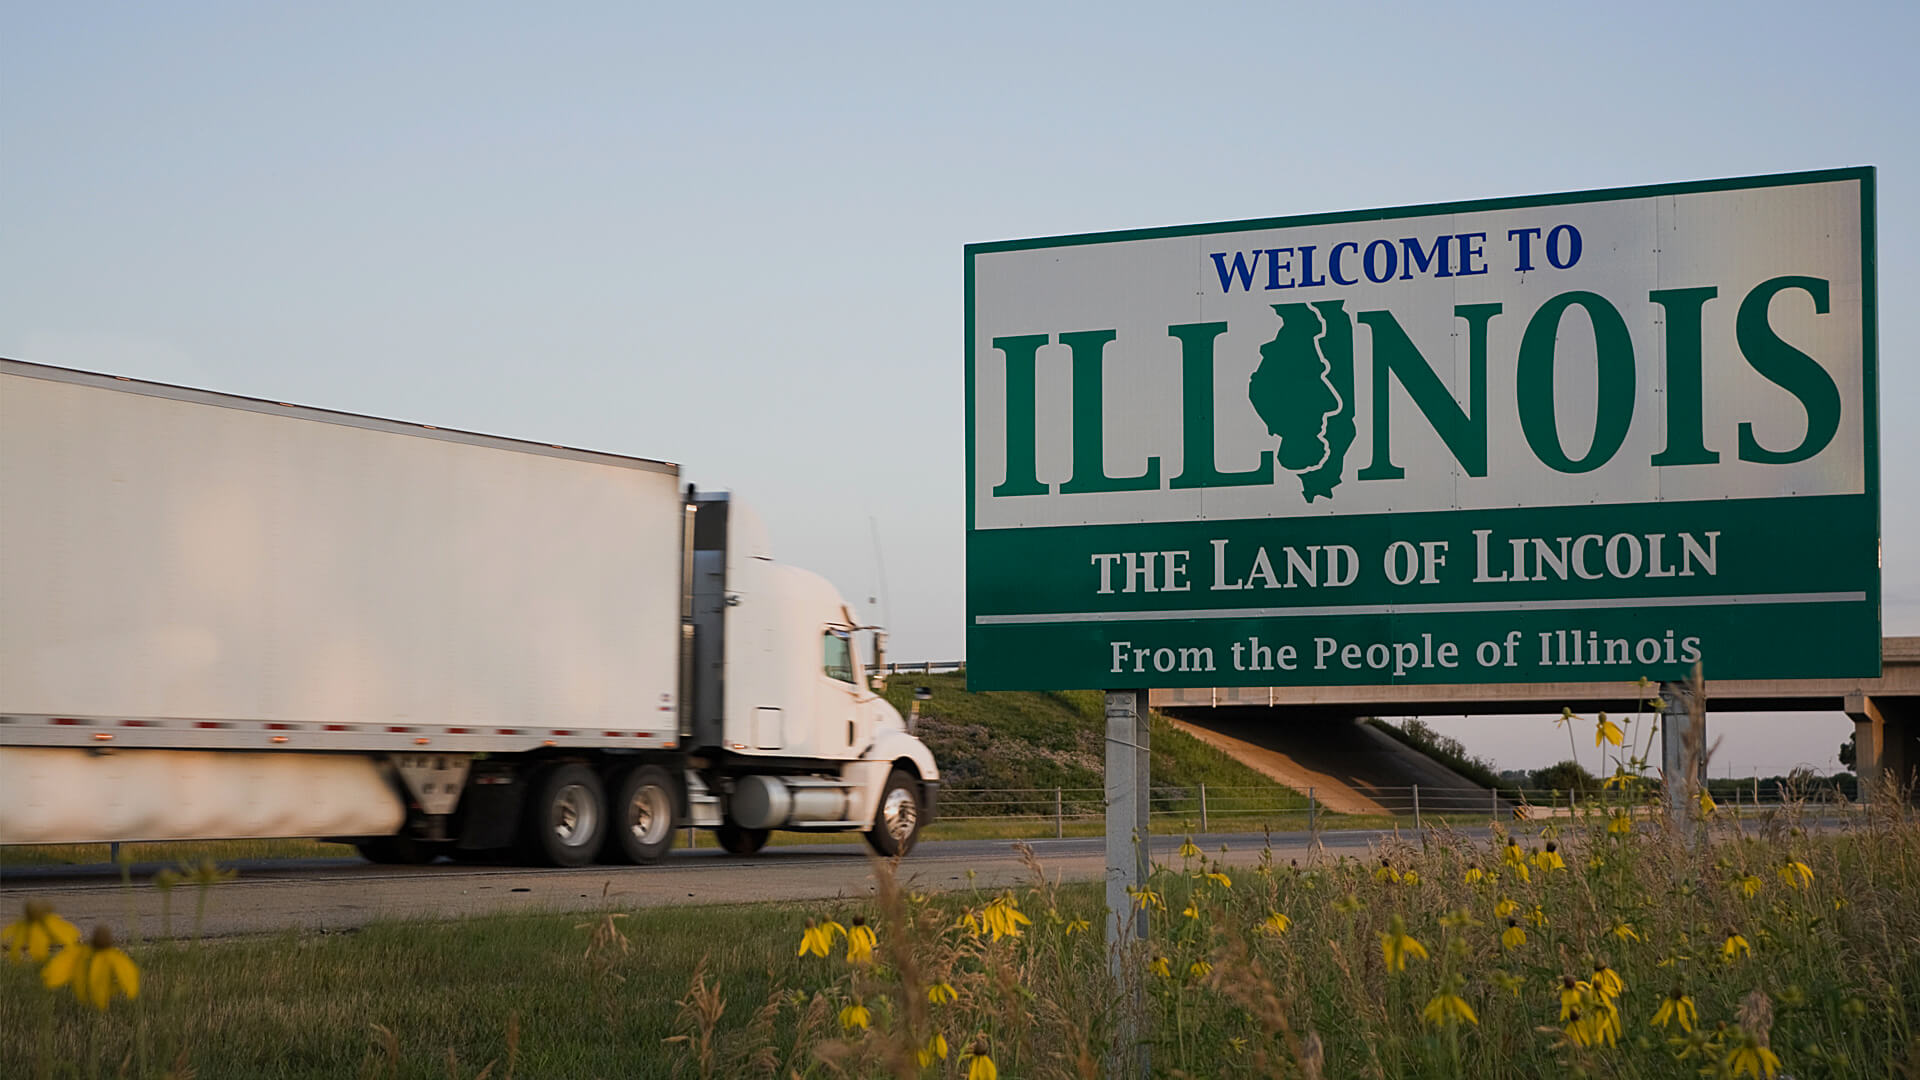 ILLINOIS State Line on the Highway